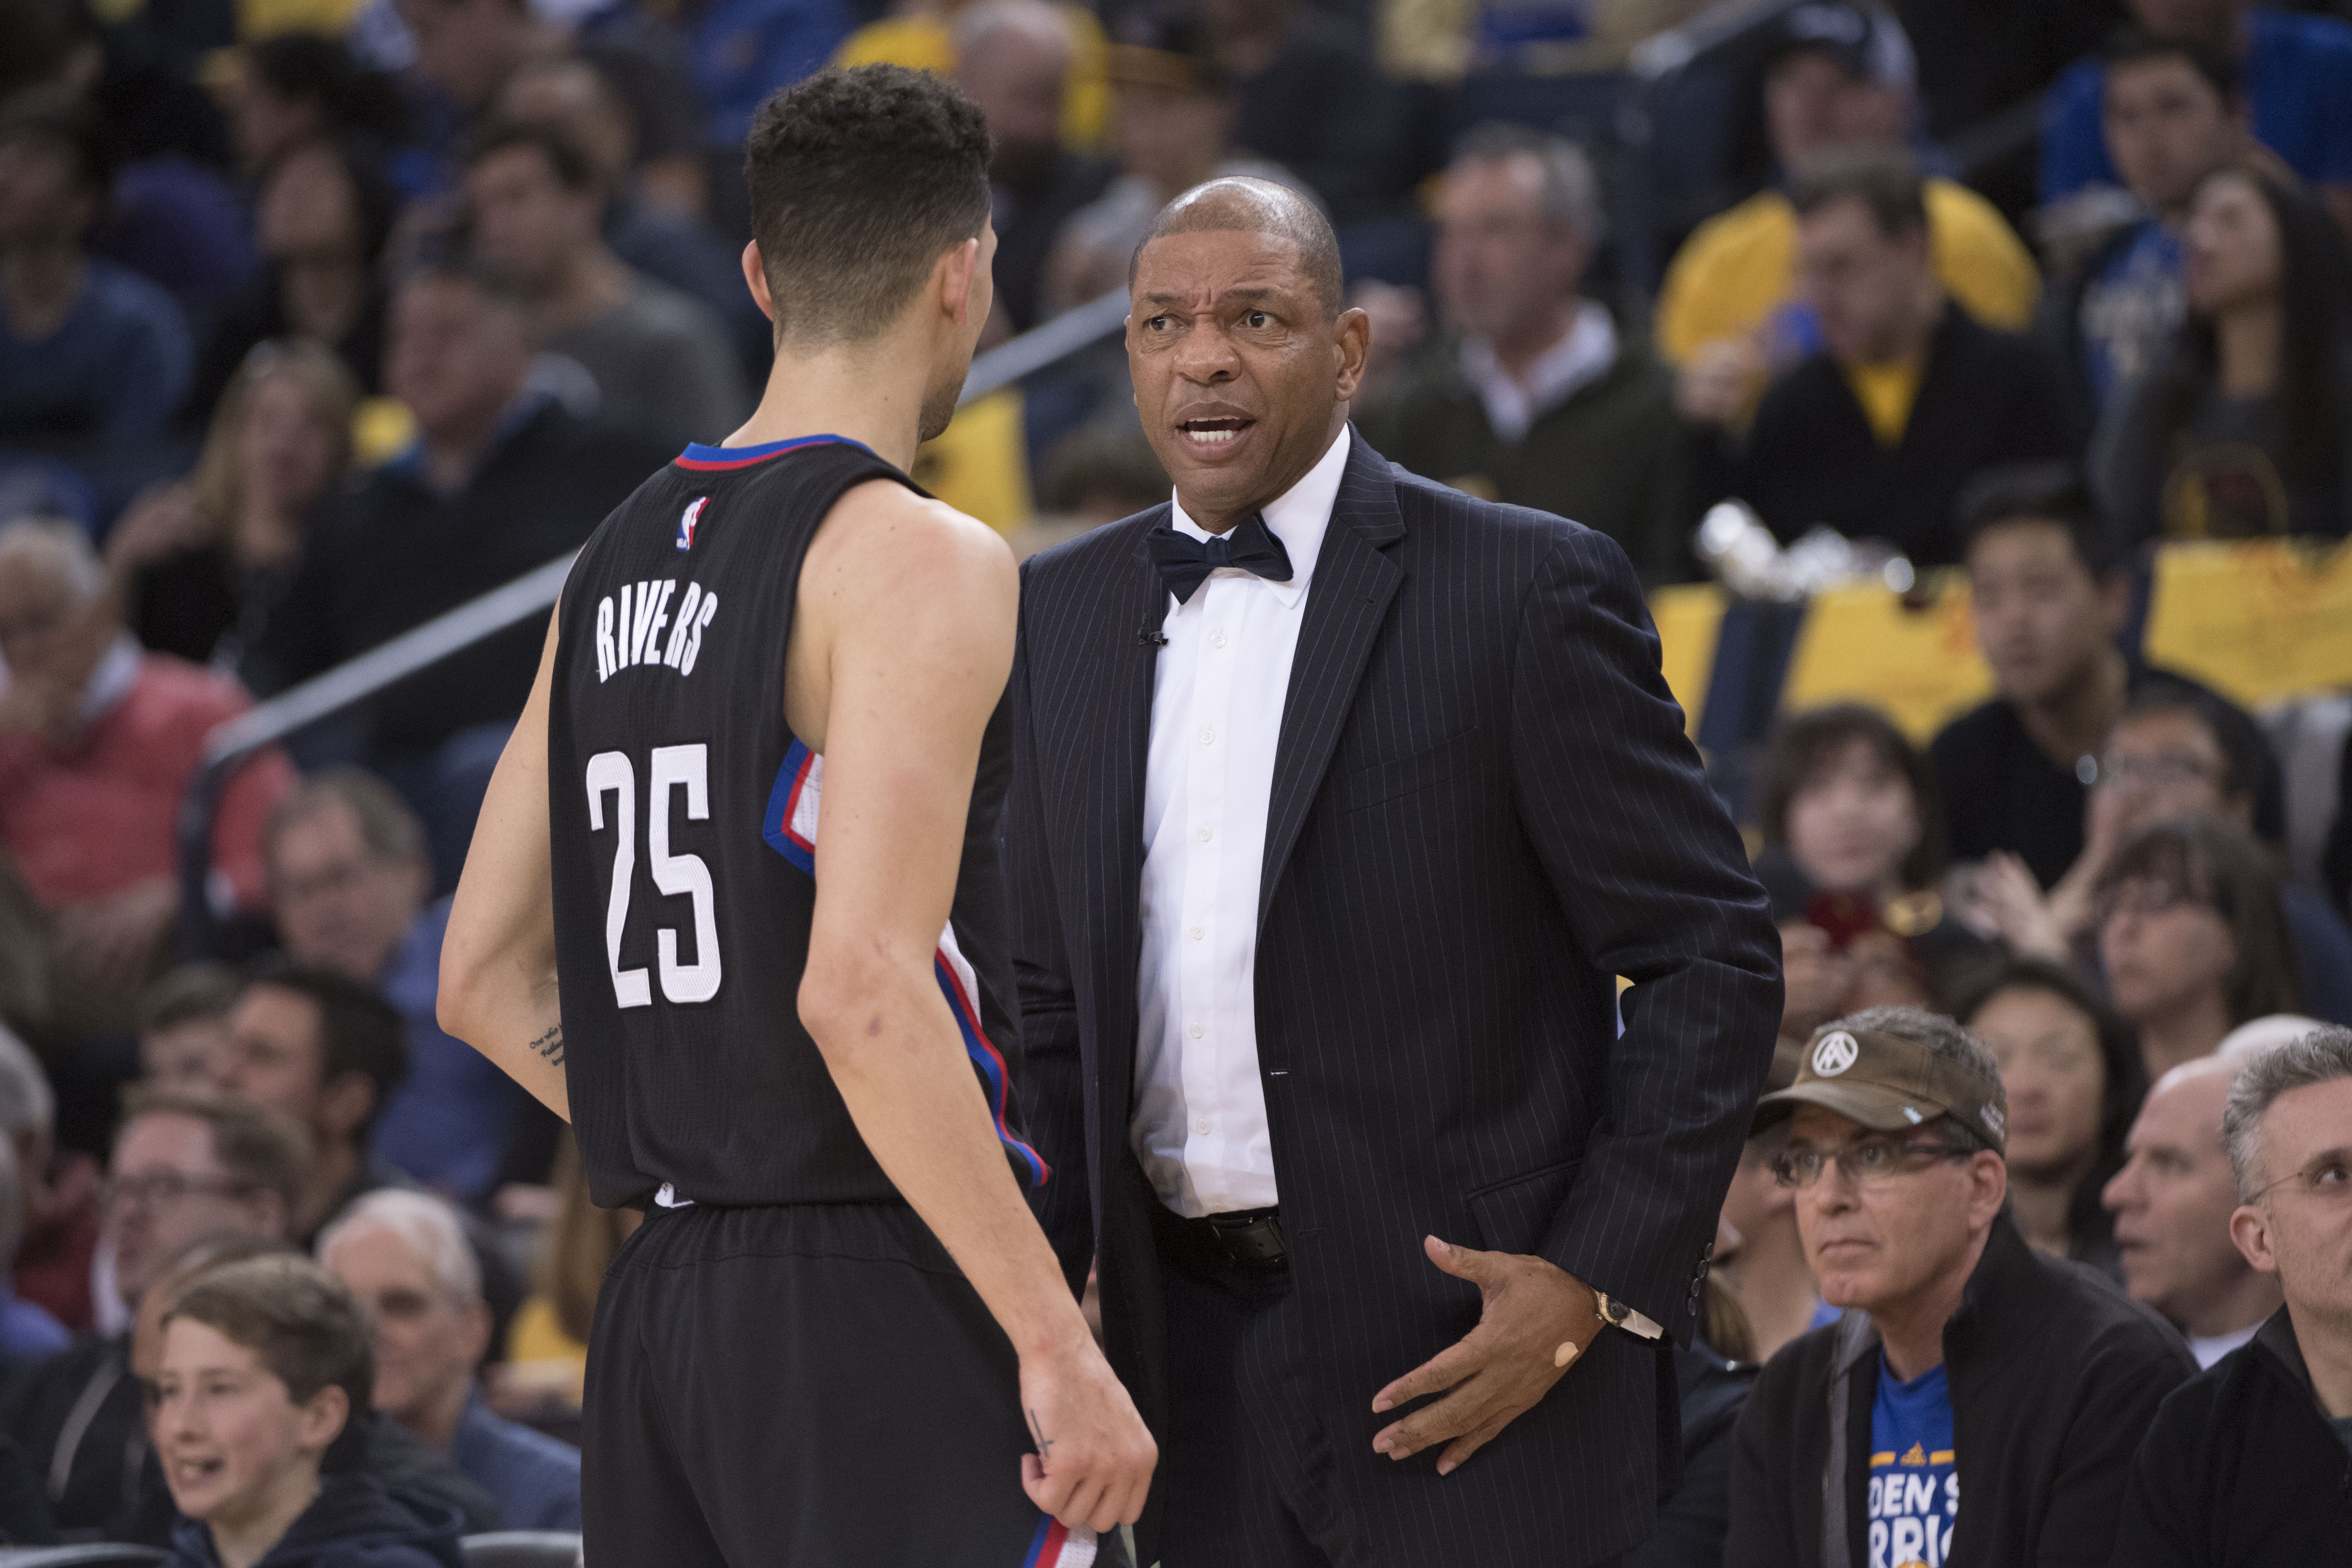 January 28, 2017; Oakland, CA, USA; Los Angeles Clippers head coach Doc Rivers (right) instructs guard Austin Rivers (25) against the Golden State Warriors during the first quarter at Oracle Arena. Mandatory Credit: Kyle Terada-USA TODAY Sports